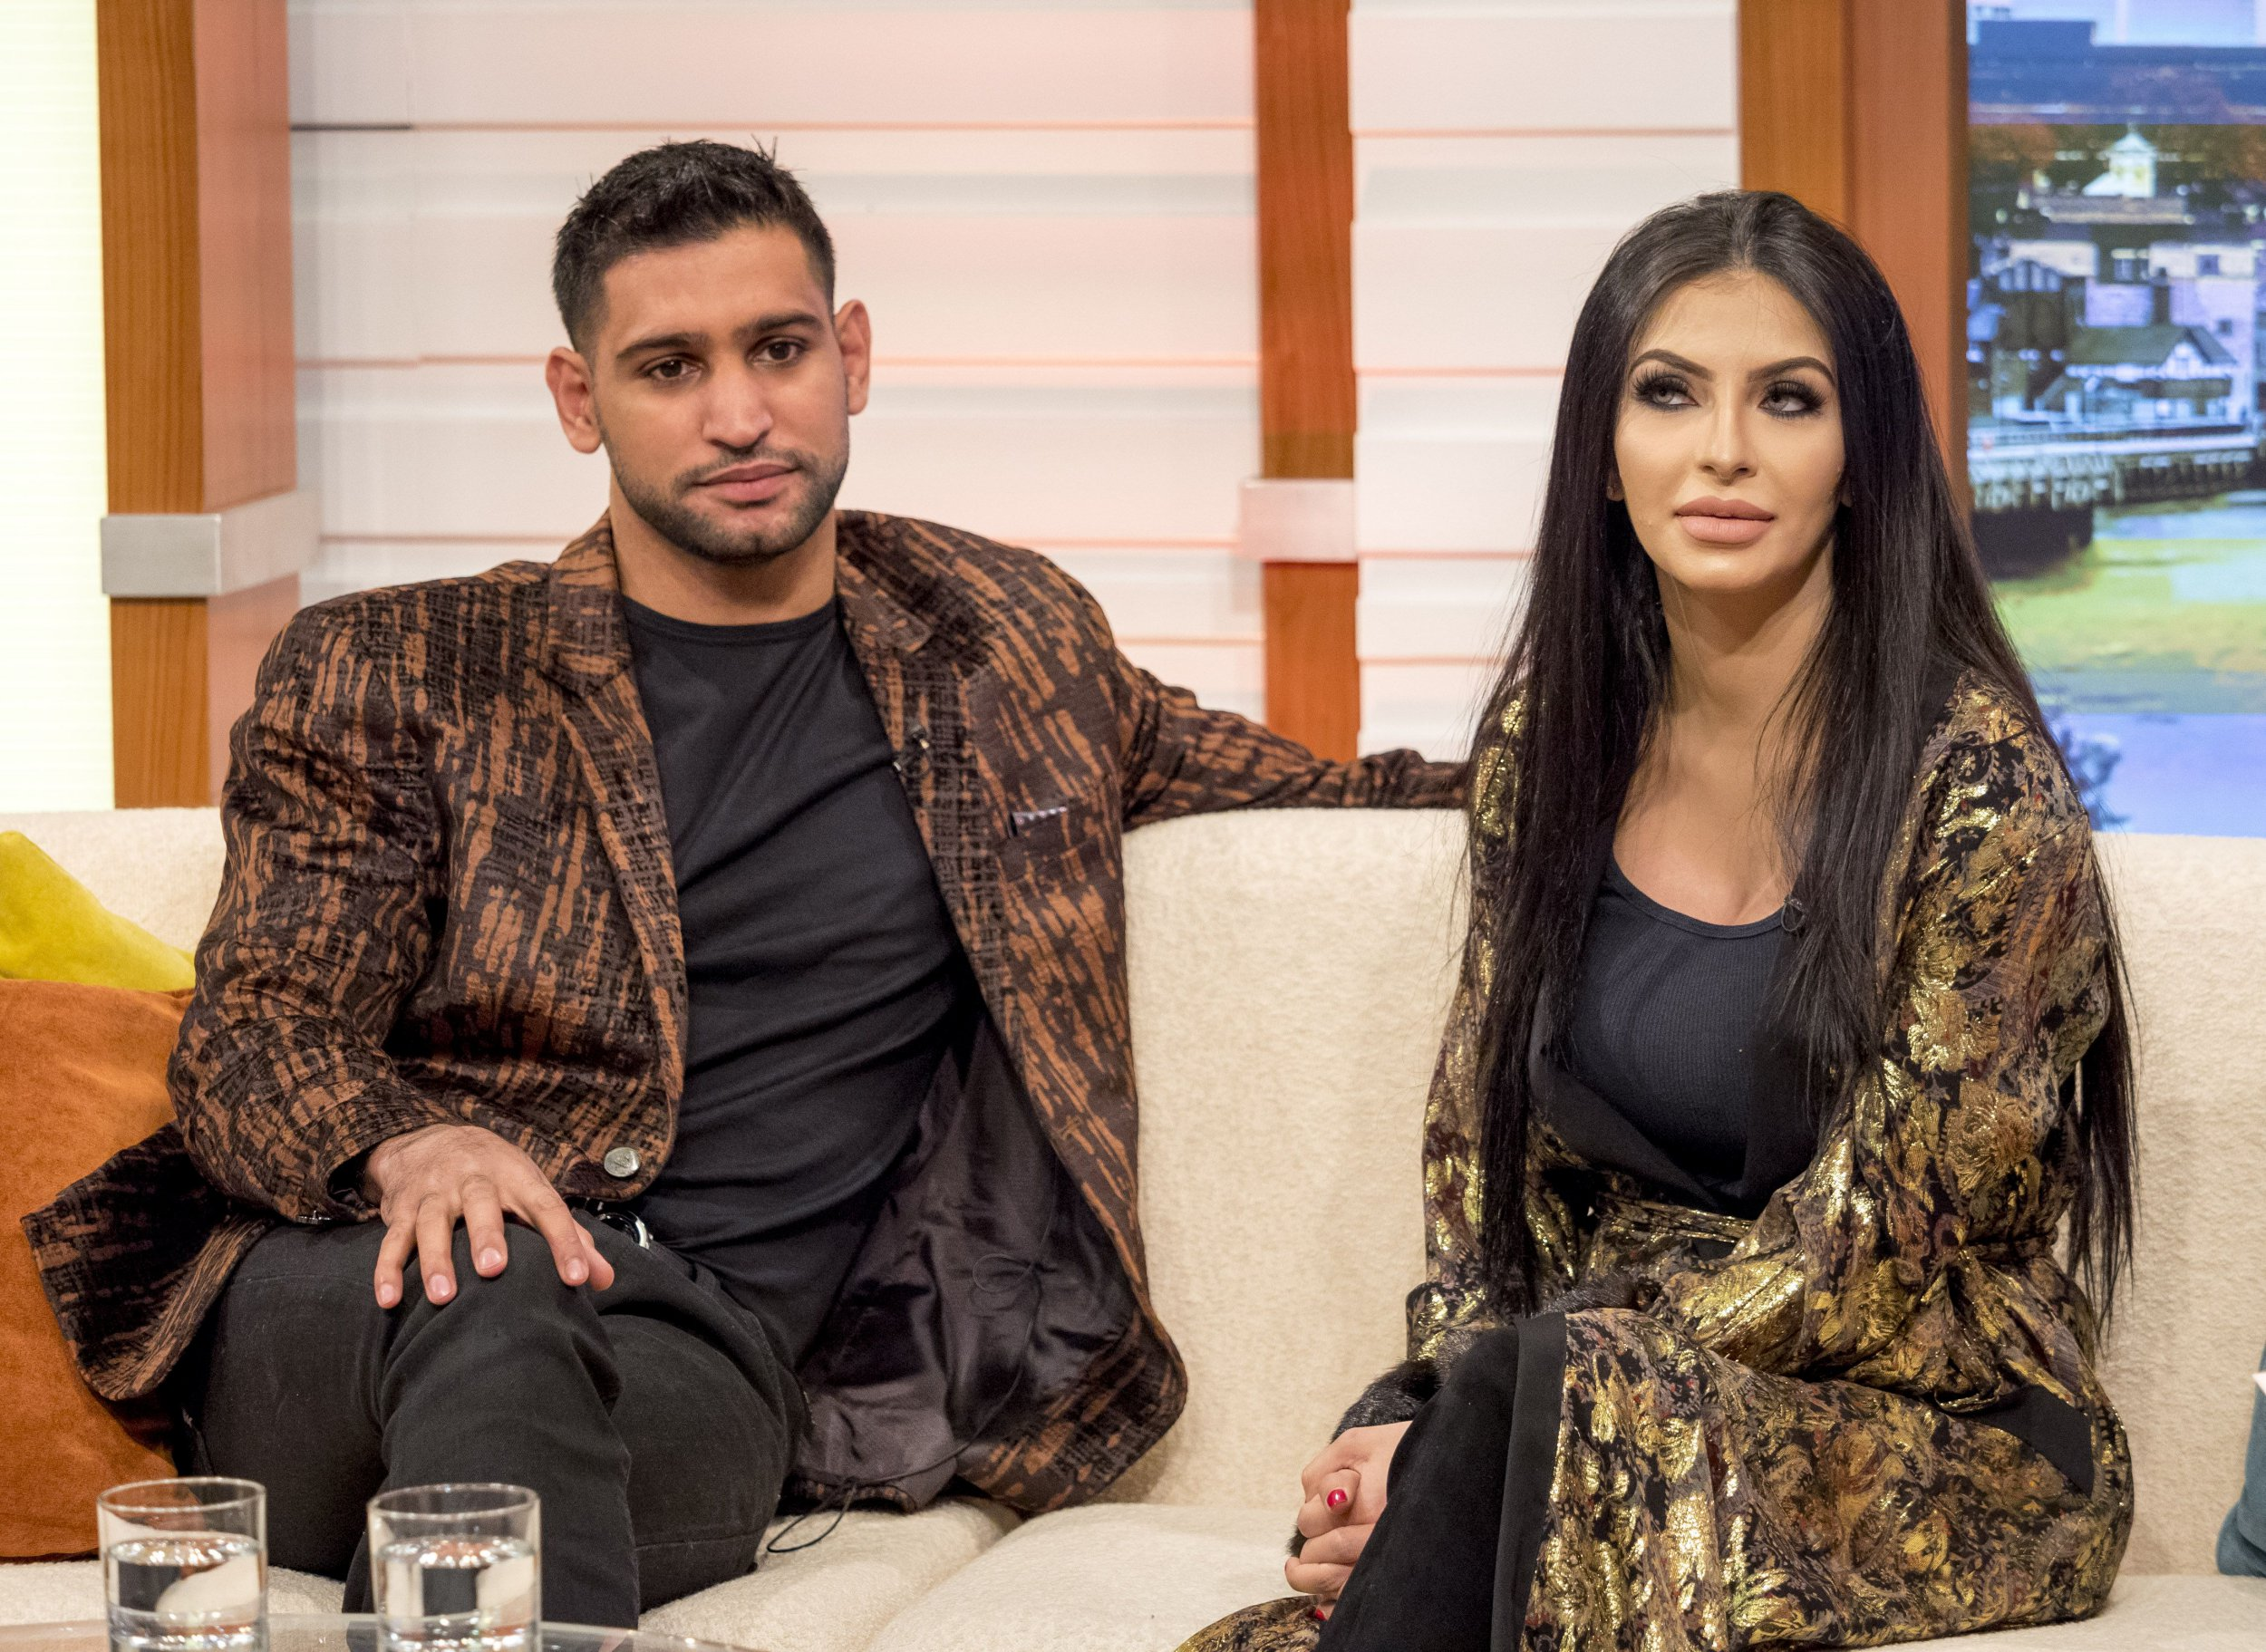 Amir Khan and Faryal Makhdoom 'in talks for fly-on-the-wall reality series'